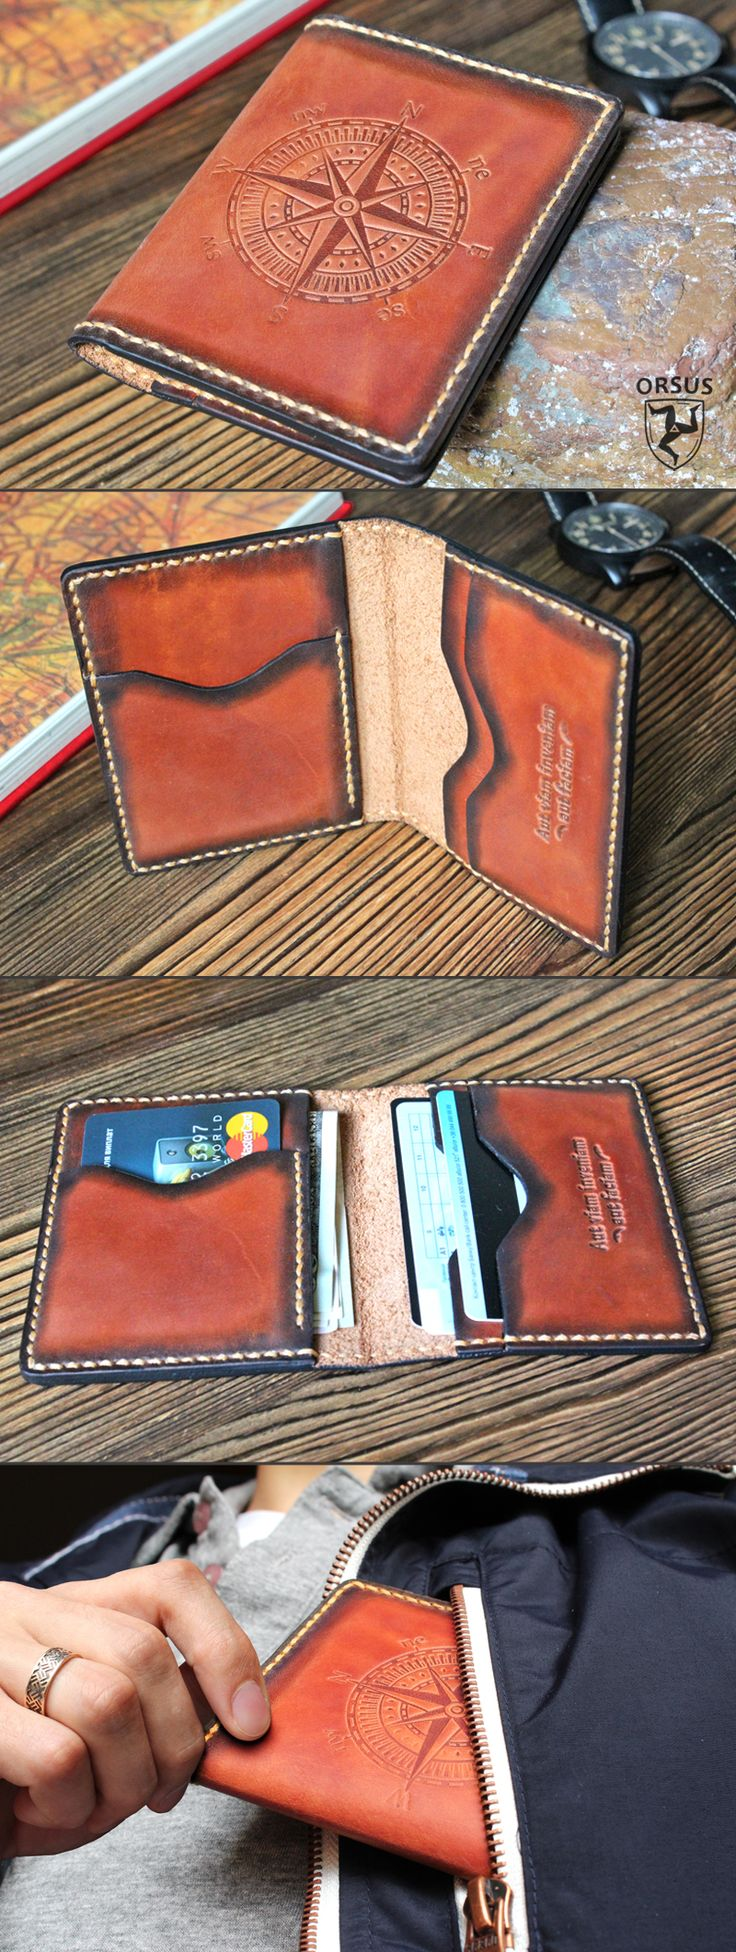 988 Best Wallets Images On Pinterest Wallets Leather Craft And